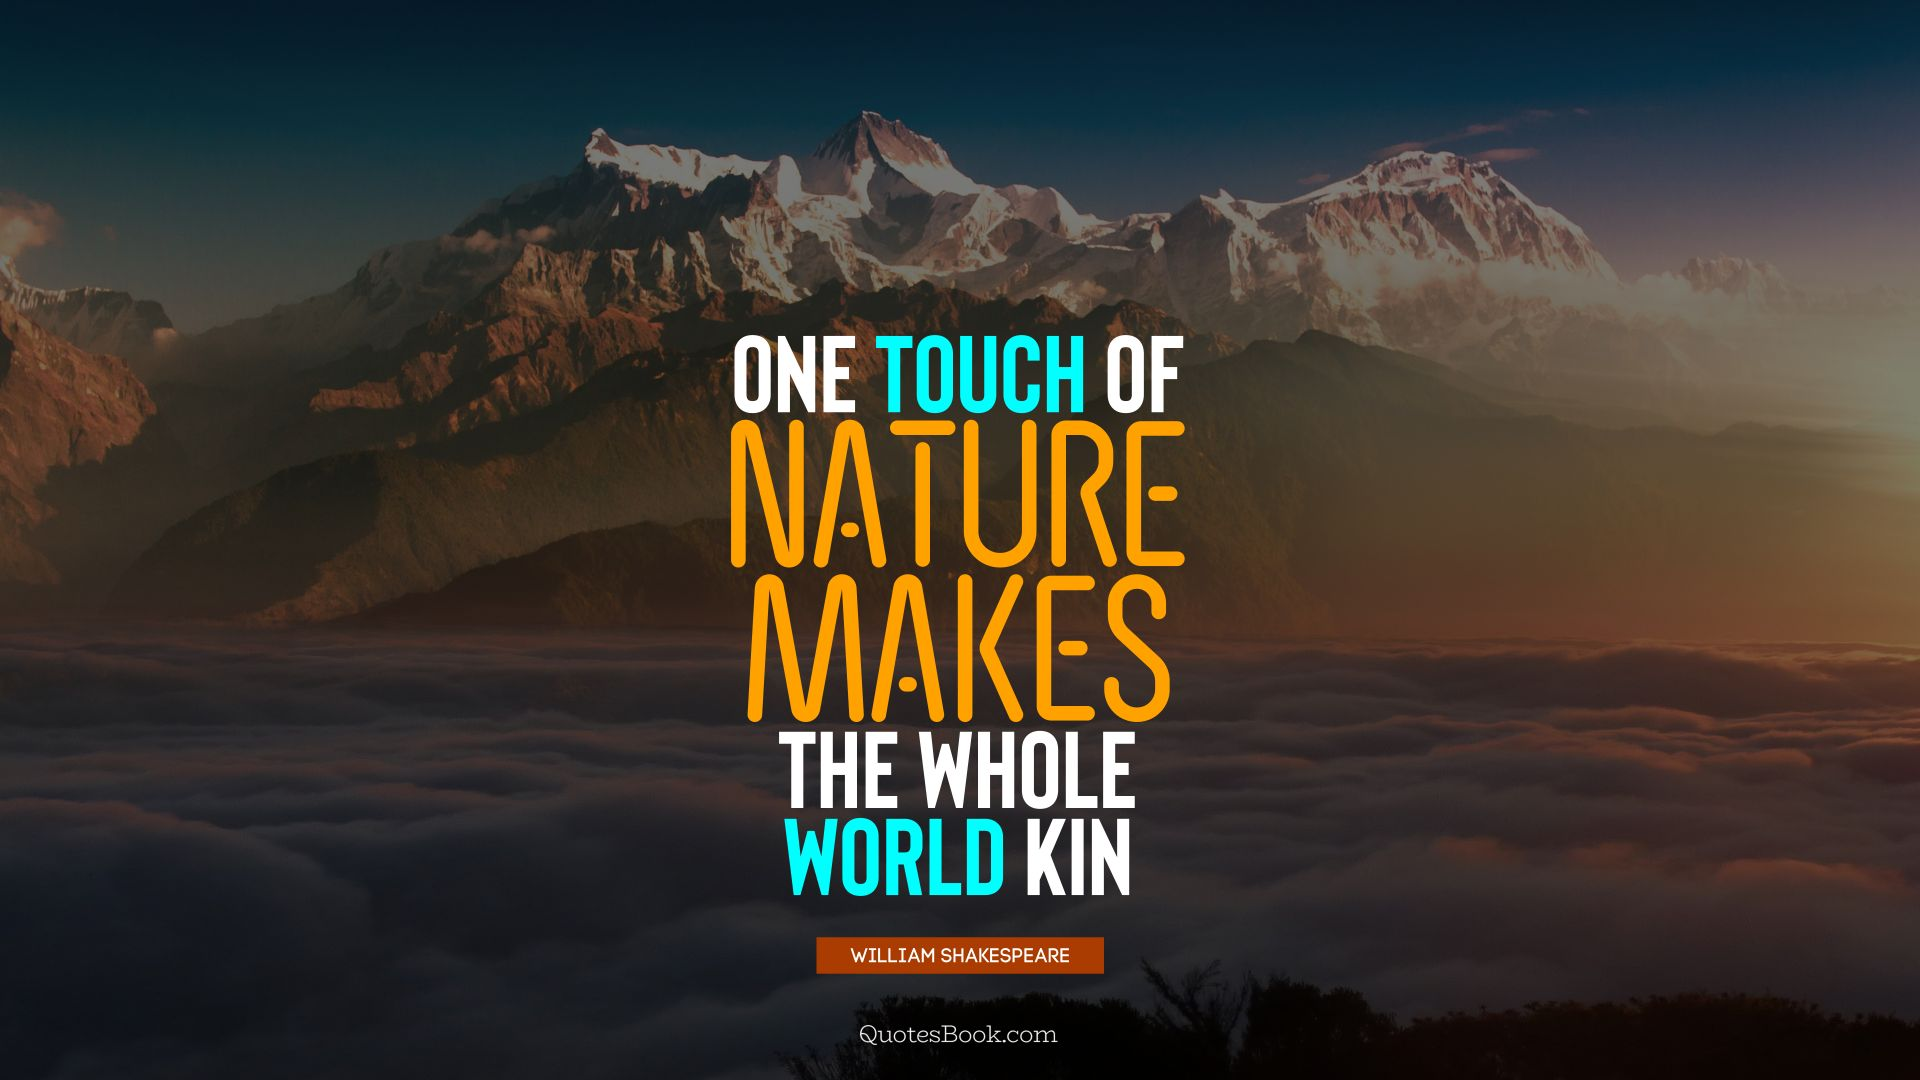 One touch of nature makes the whole world kin. - Quote by William Shakespeare